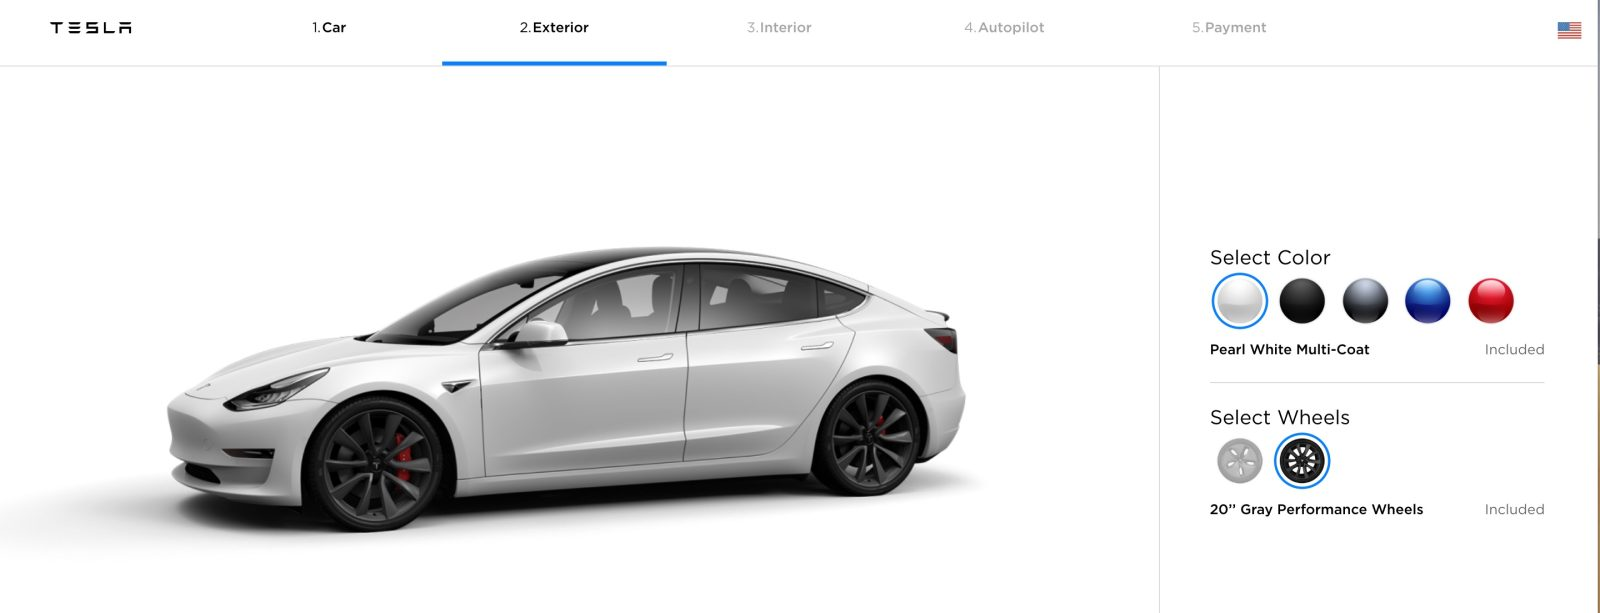 Tesla officially launches new Model 3 Gray Performance wheels